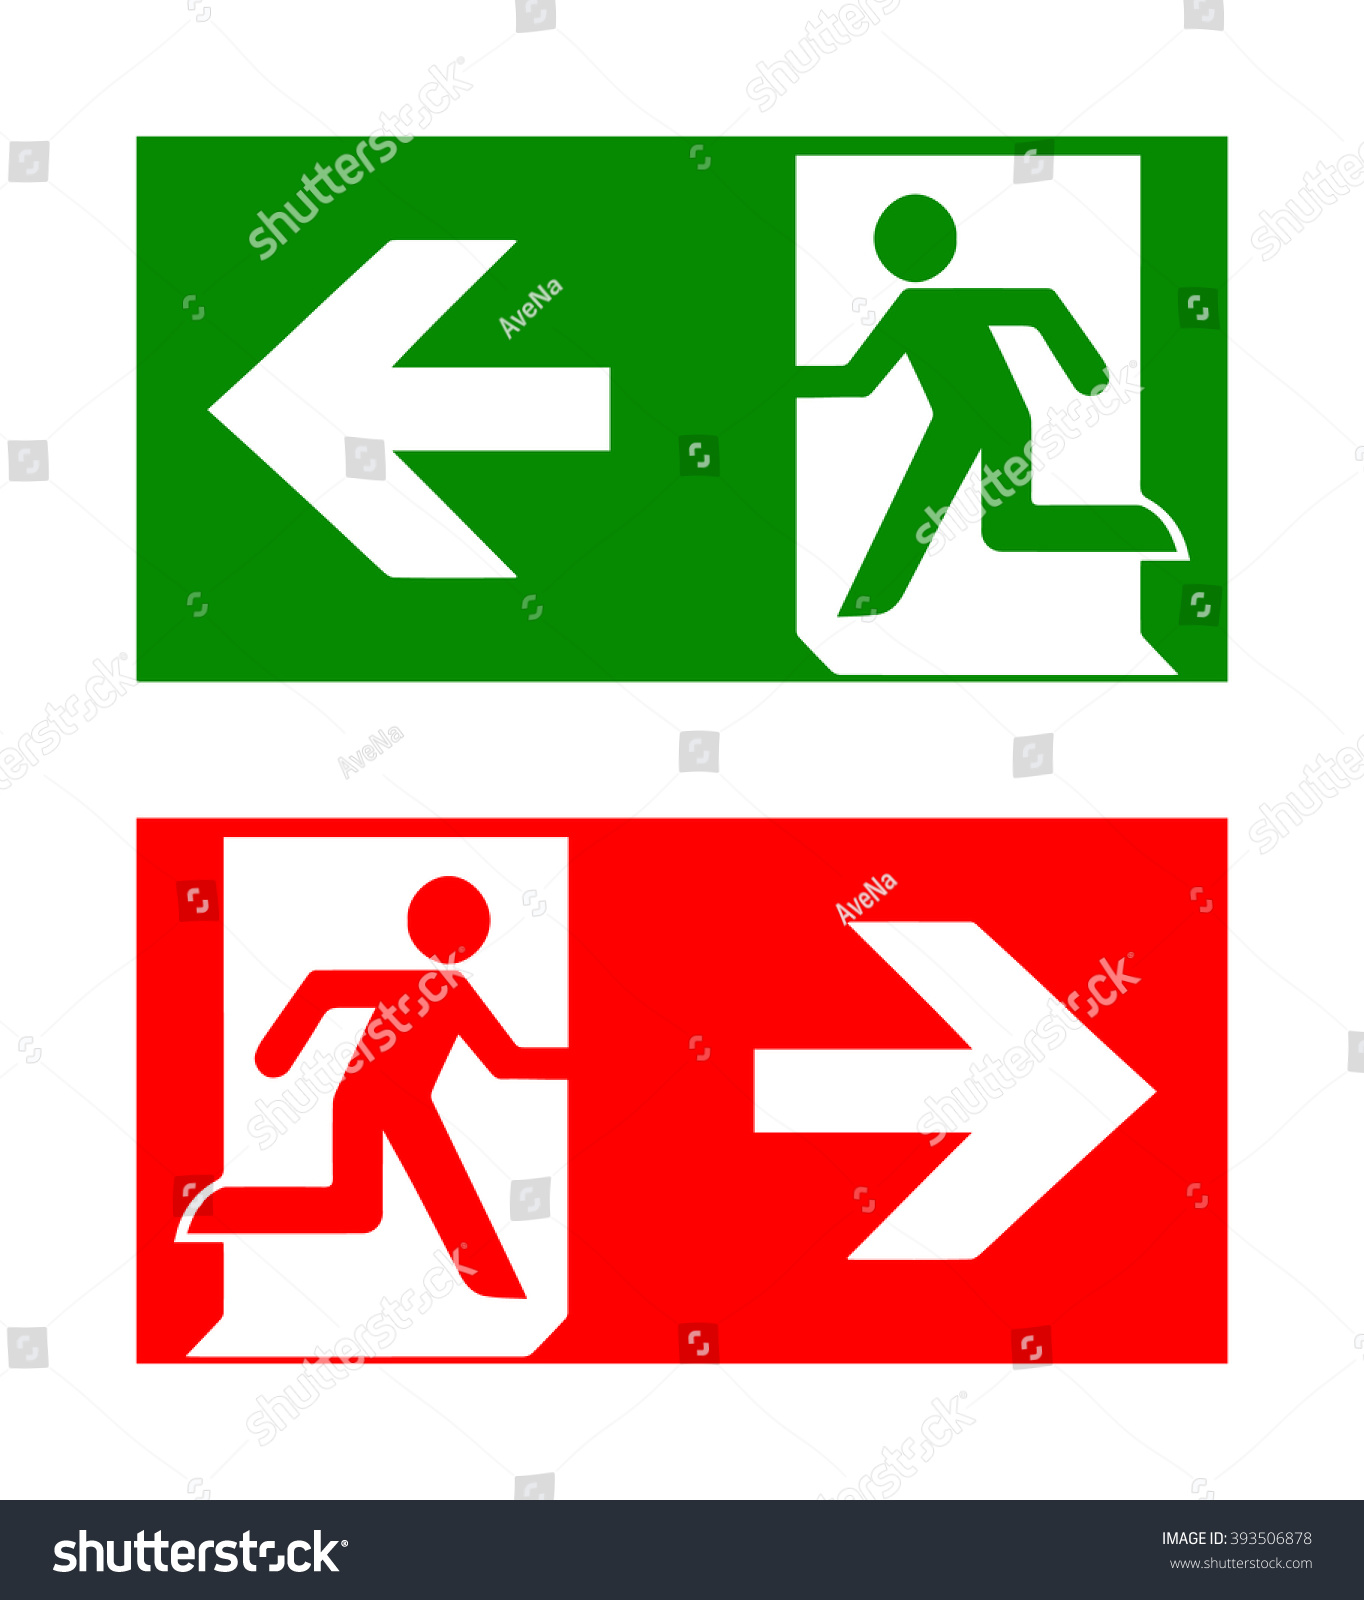 Royalty Free Vector Fire Emergency Icons Signs Of 393506878 Stock